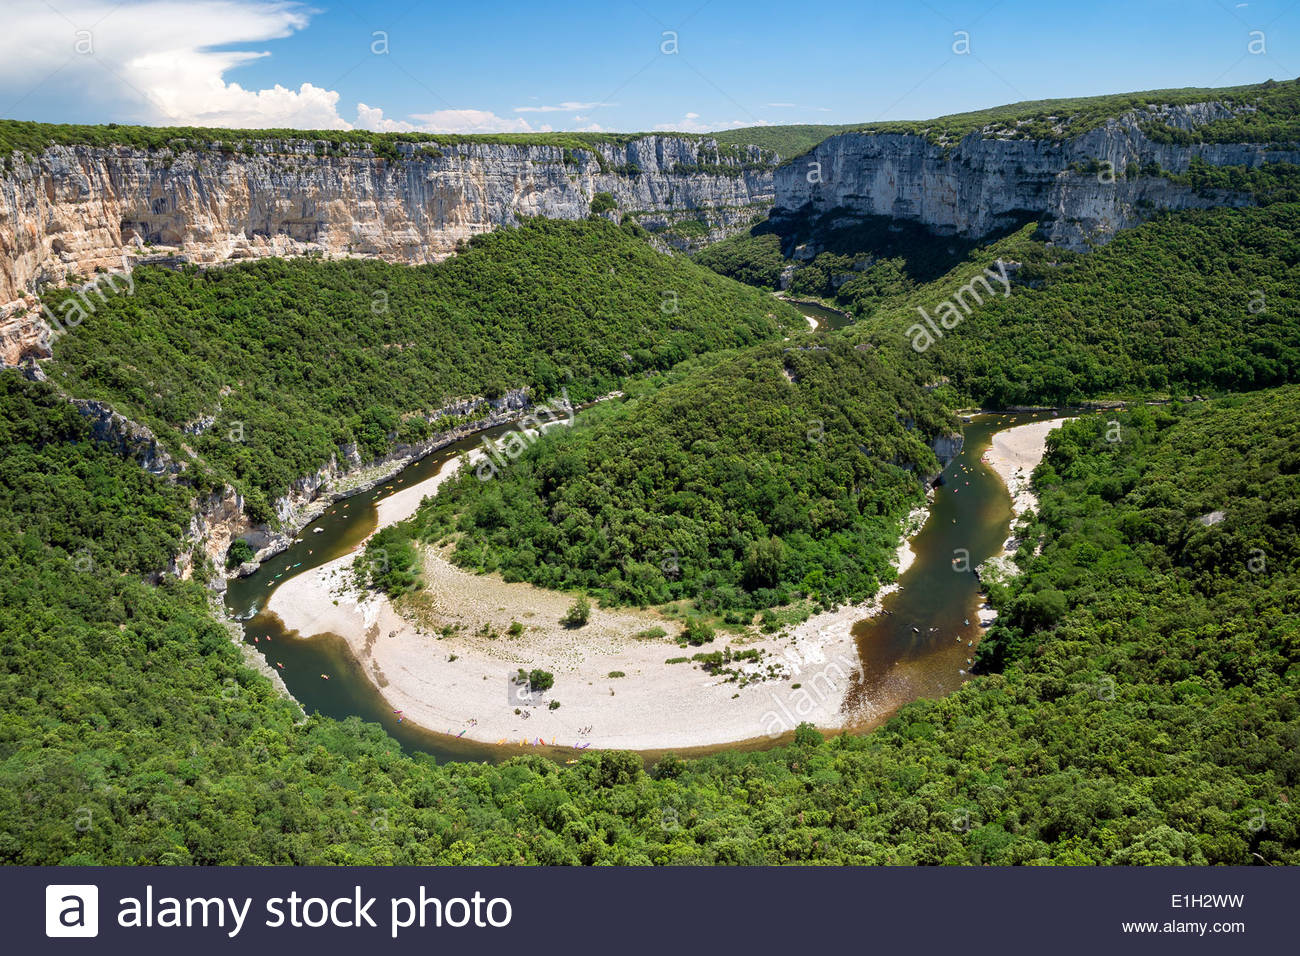 gorges-de-lardche-in-france-E1H2WW.jpg